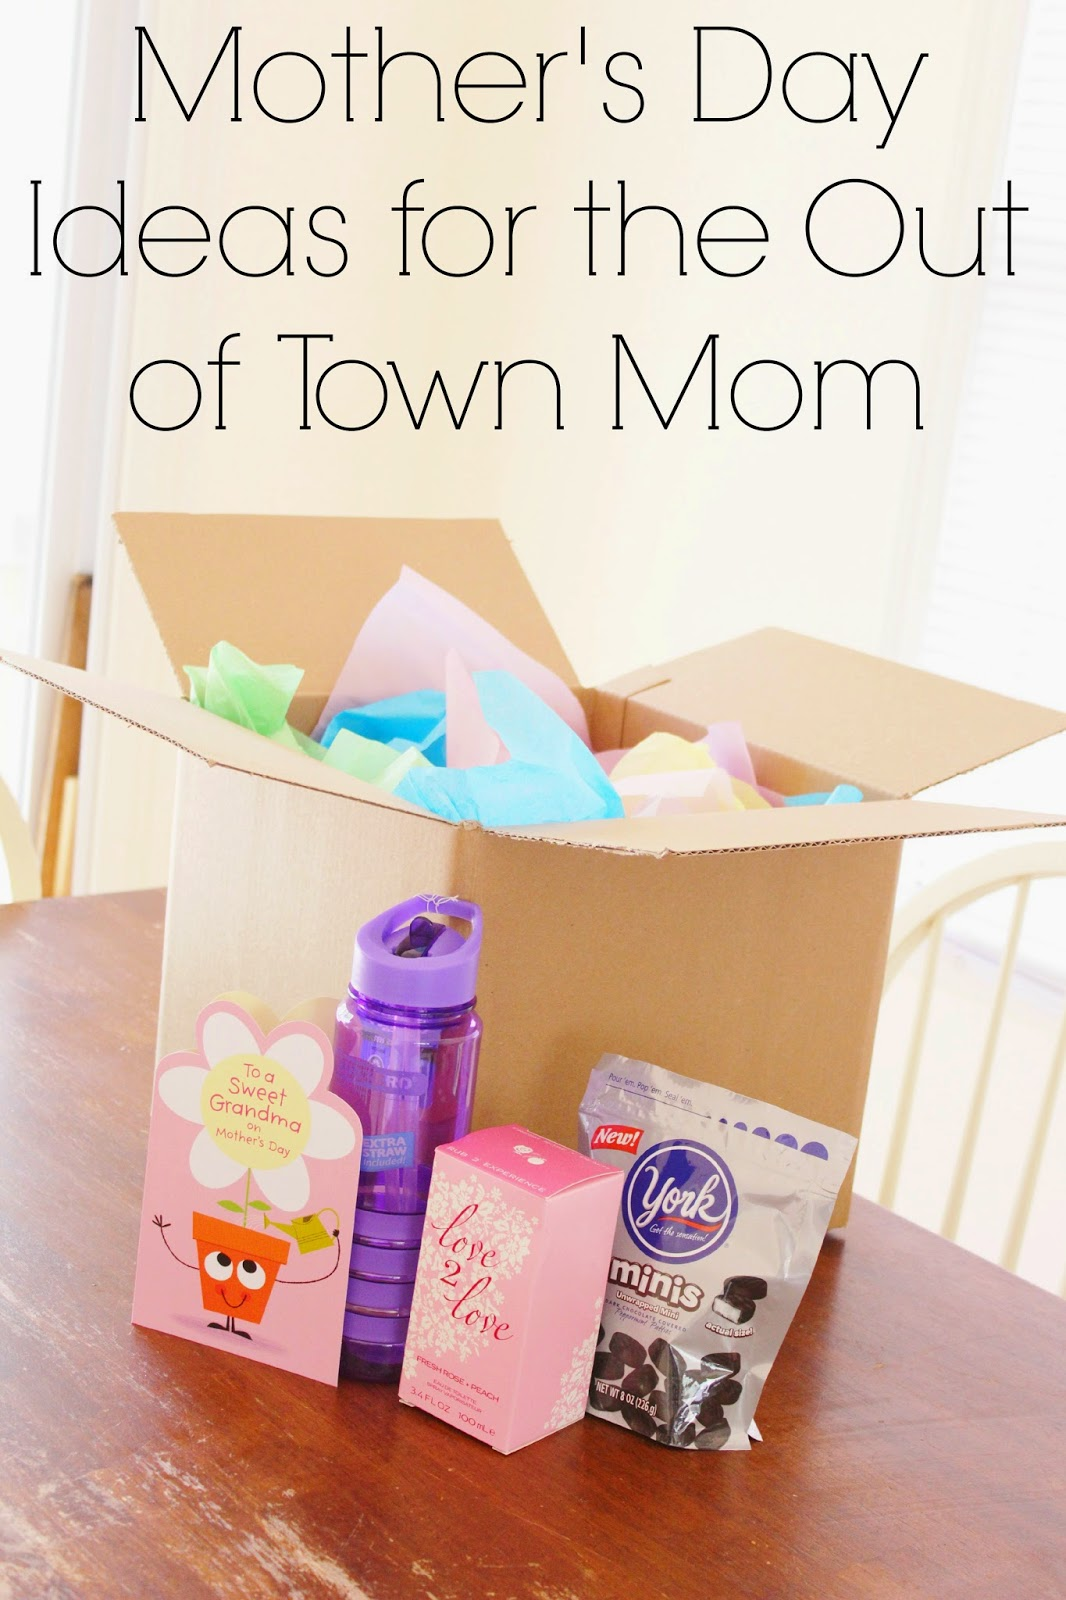 6 Mother's Day Ideas for the Out of Town Mom - The Happy Flammily